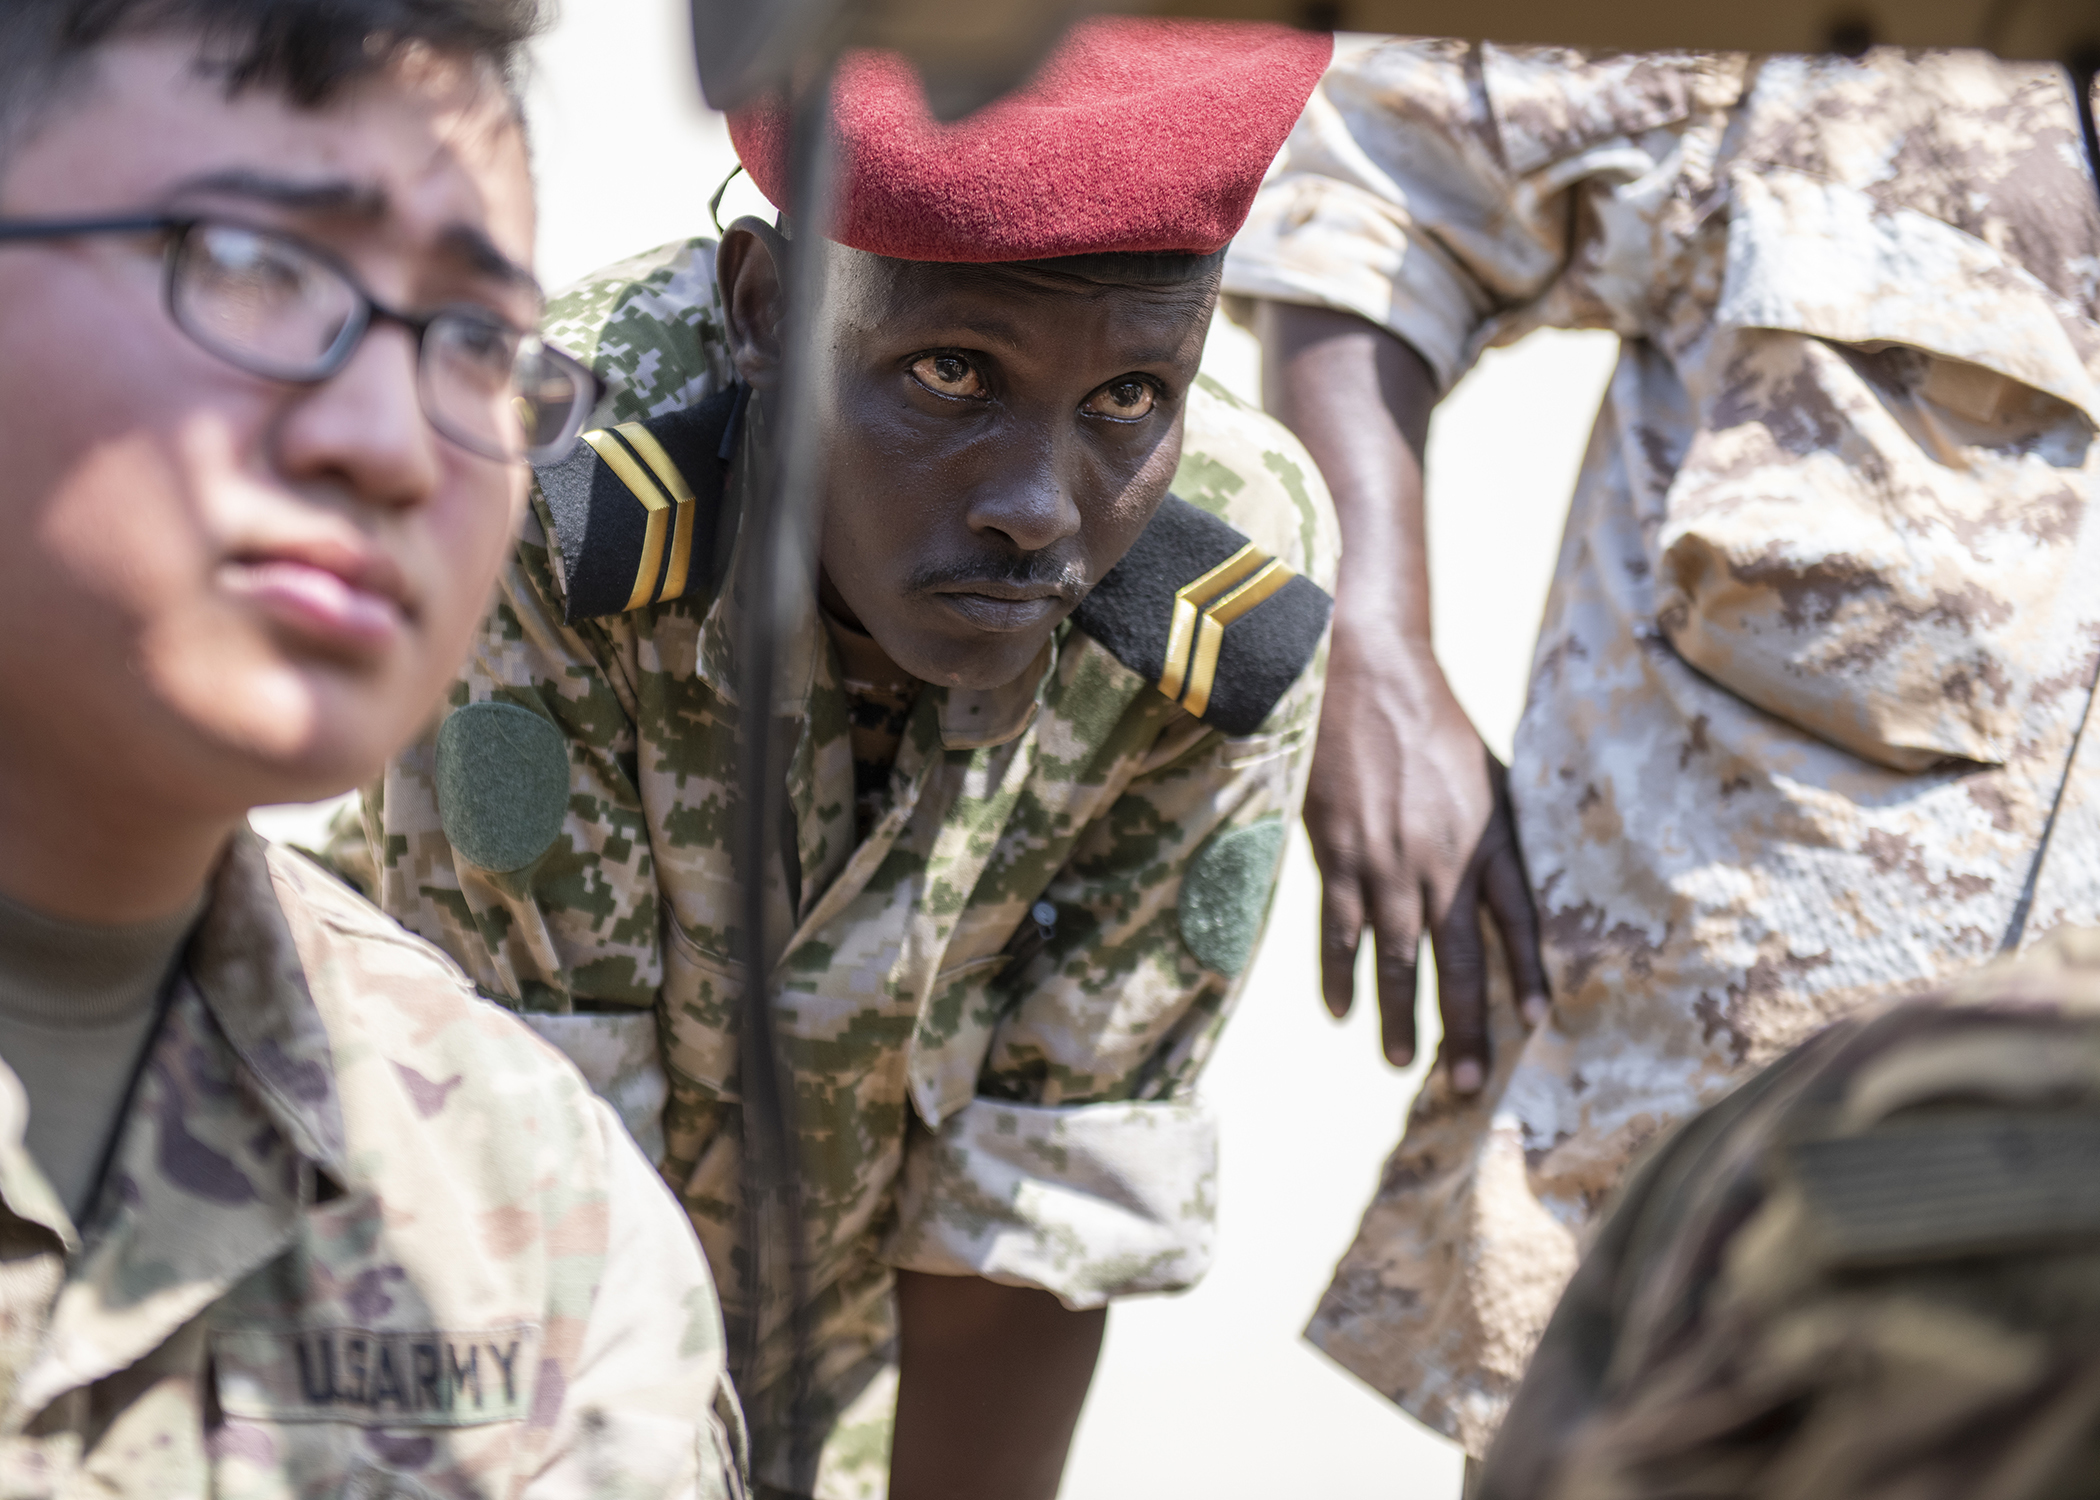 A Djibouti Army (FAD) soldier watches while U.S. Army Soldiers from the Combined Joint Task Force-Horn of Africa communications directorate set up a satellite unit during an Africa Data Sharing Network (ADSN), version two, information exchange with FAD soldiers at FAD Headquarters, Djibouti, Dec. 26, 2018. The ADSN works as an internal network that the African Union Mission in Somalia troop-contributing countries can use to communicate and share information amongst each other. (U.S. Air Force photo by Tech. Sgt. Shawn Nickel)